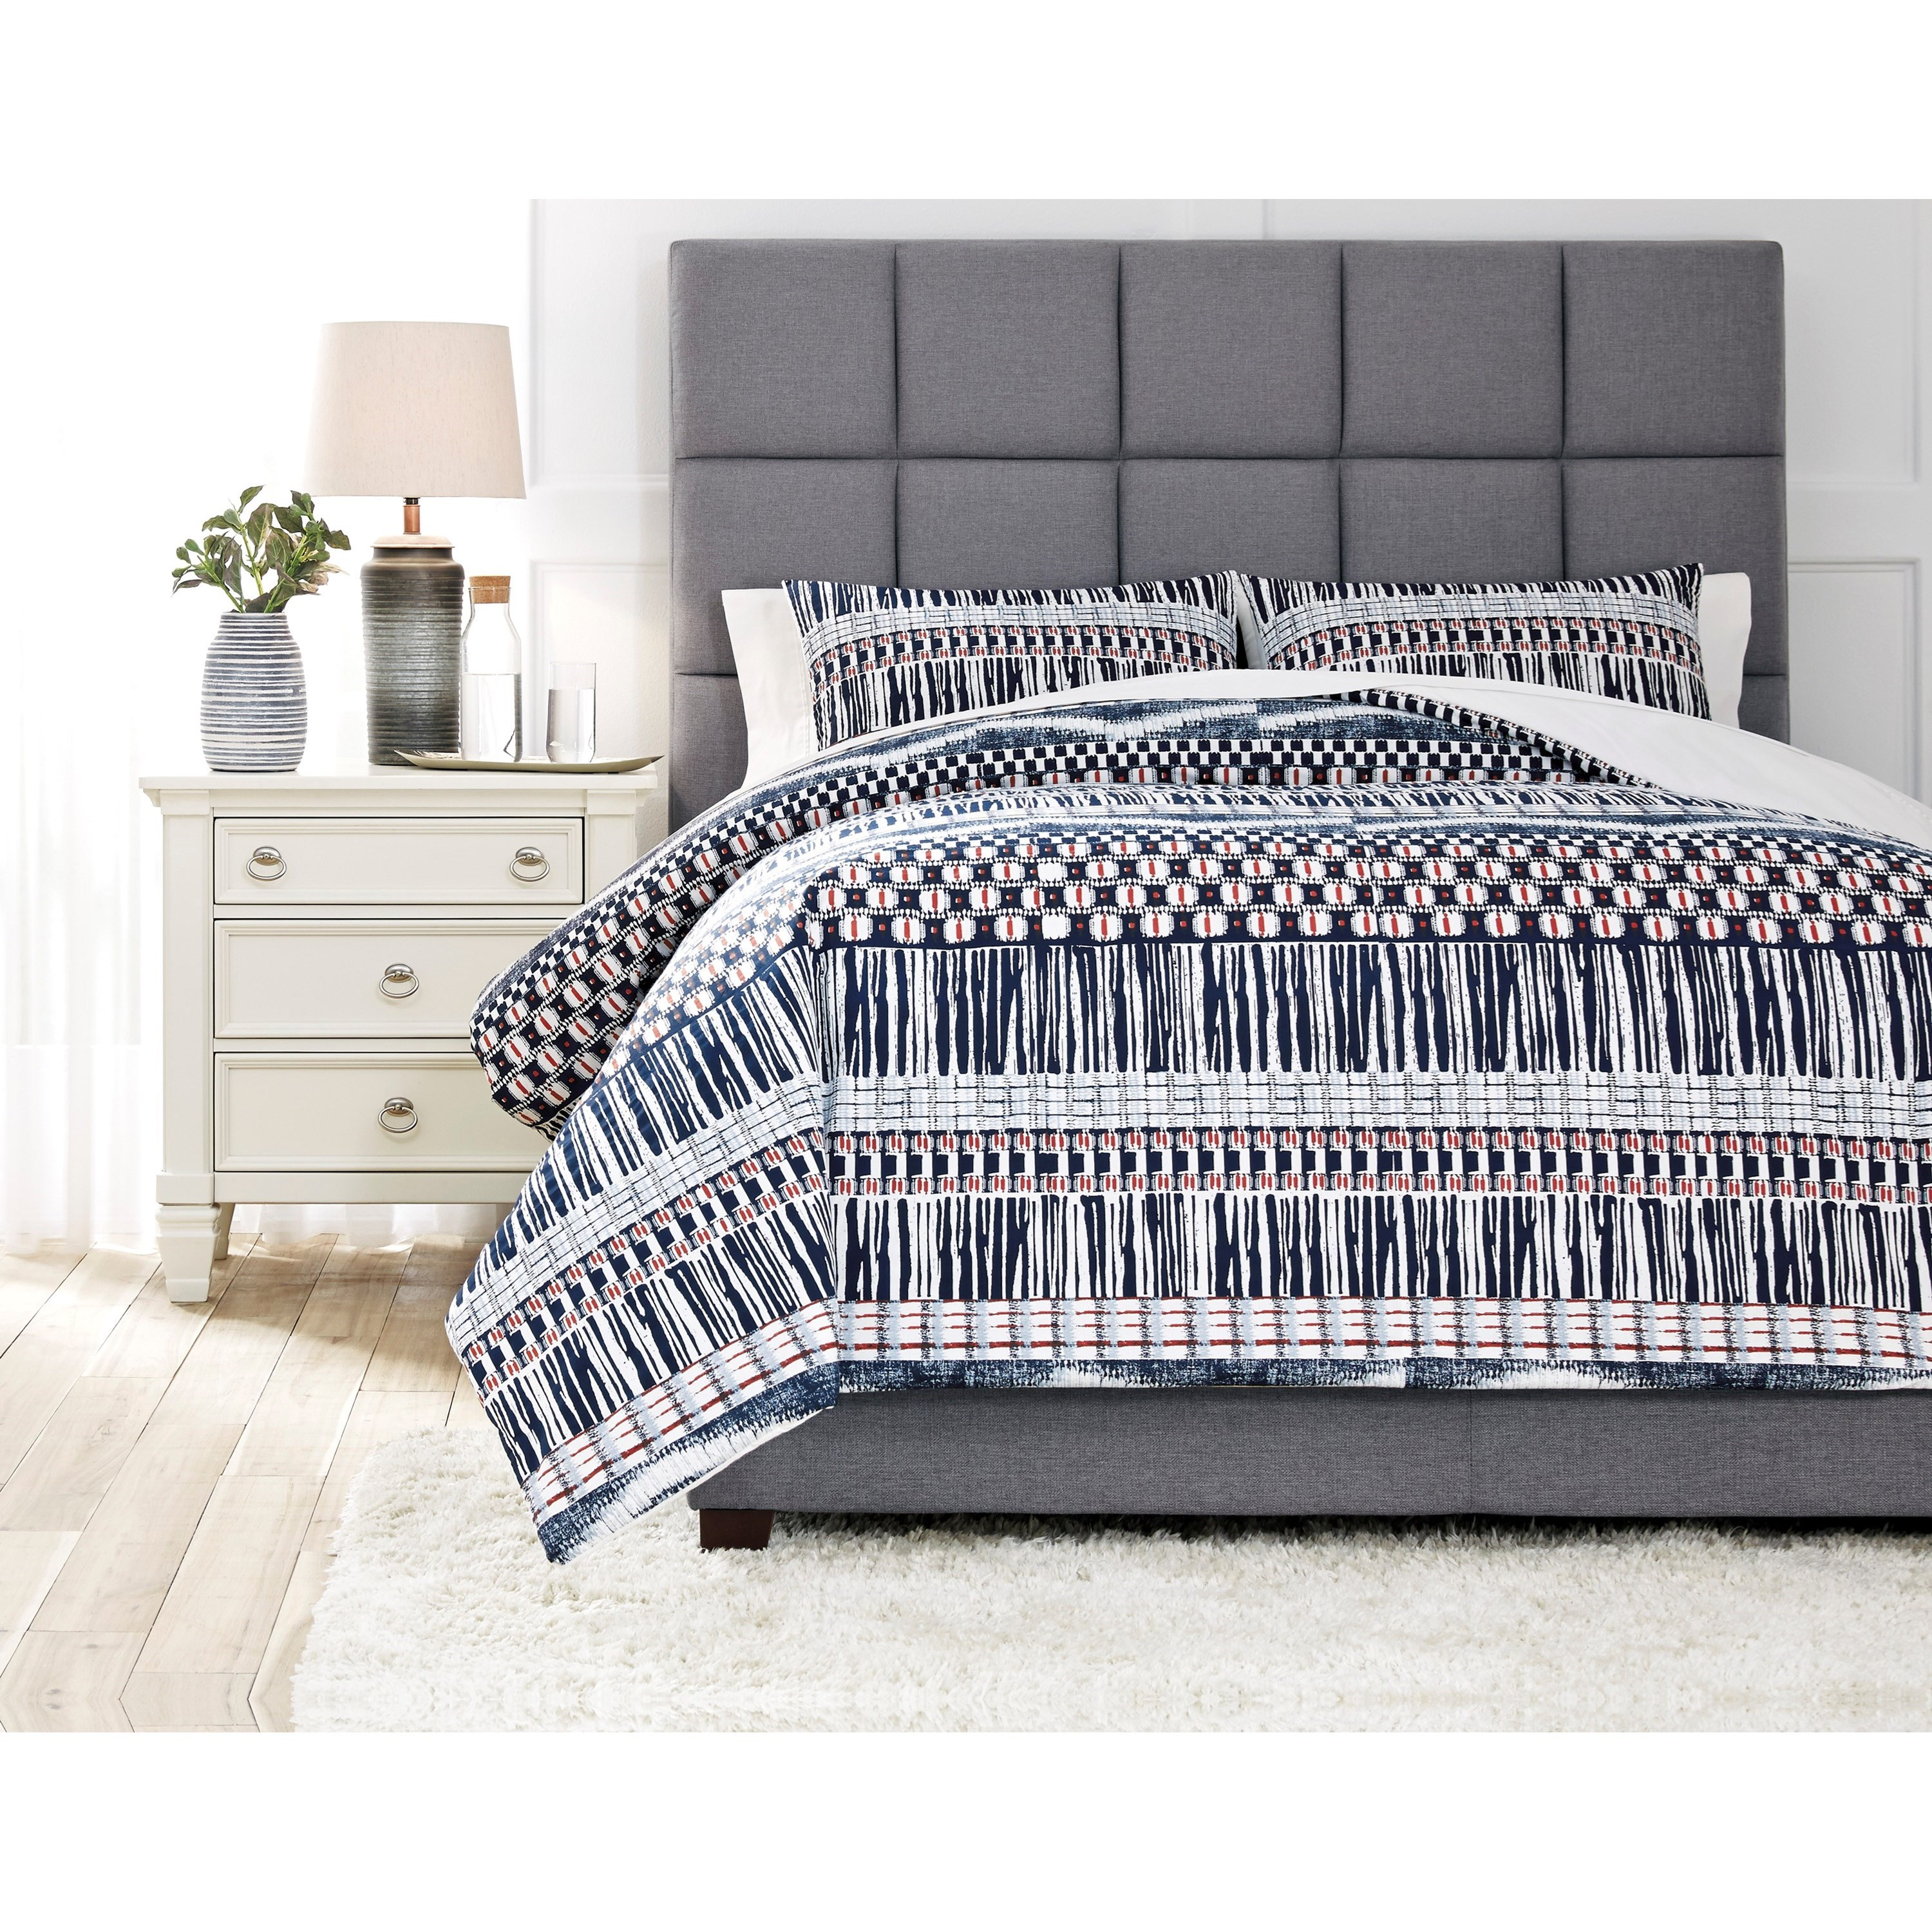 Signature Design By Ashley Bedding Sets Shilliam Navy Rust King Comforter Set Godby Home Furnishings Bedding Sets